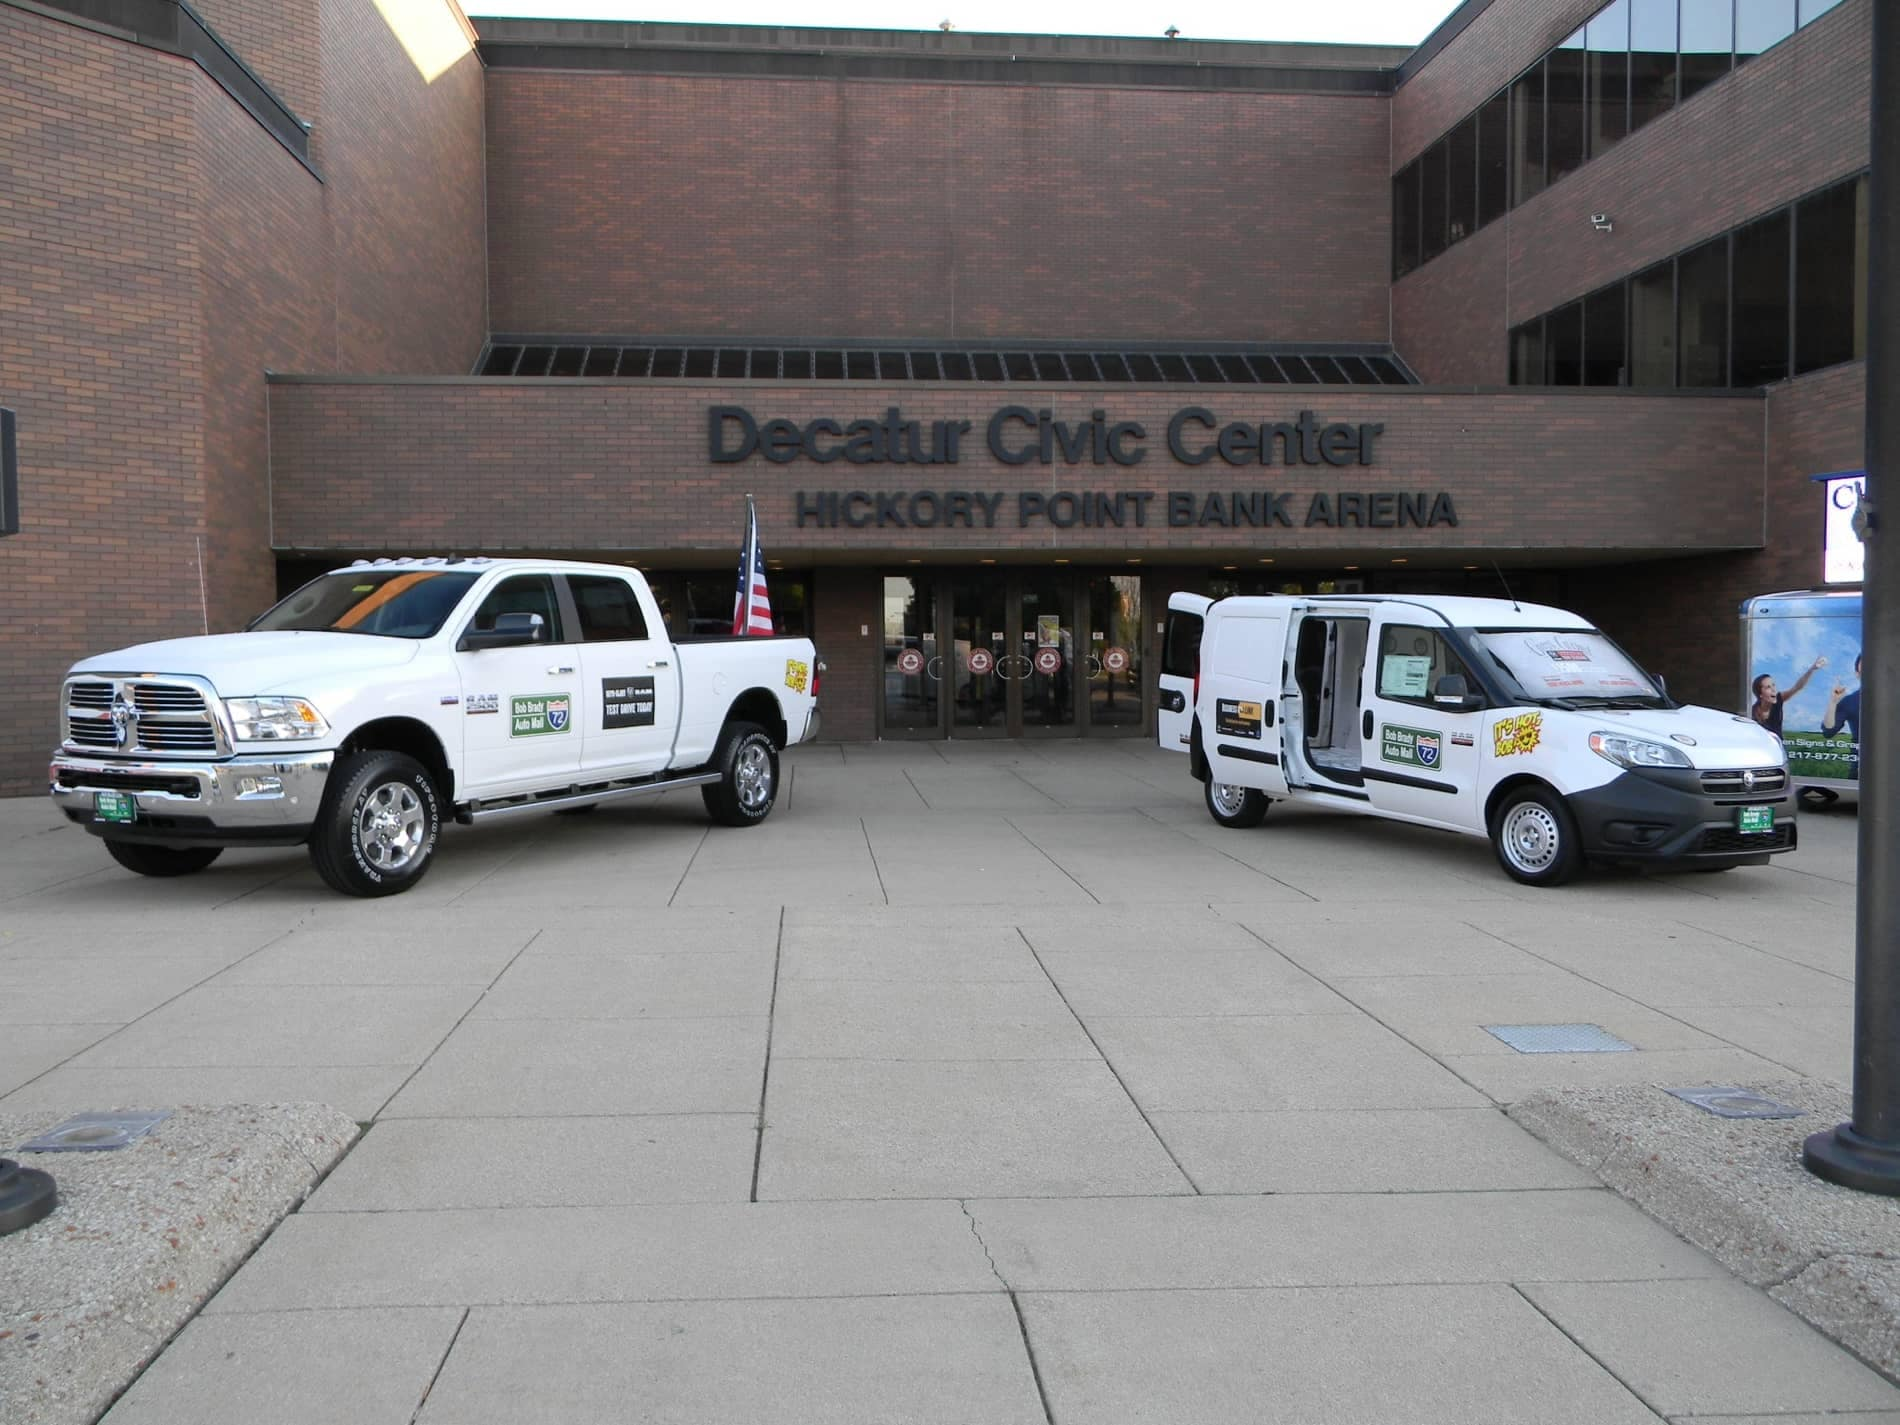 Truck and Van with upfit parked in front of Decatur Civic Center